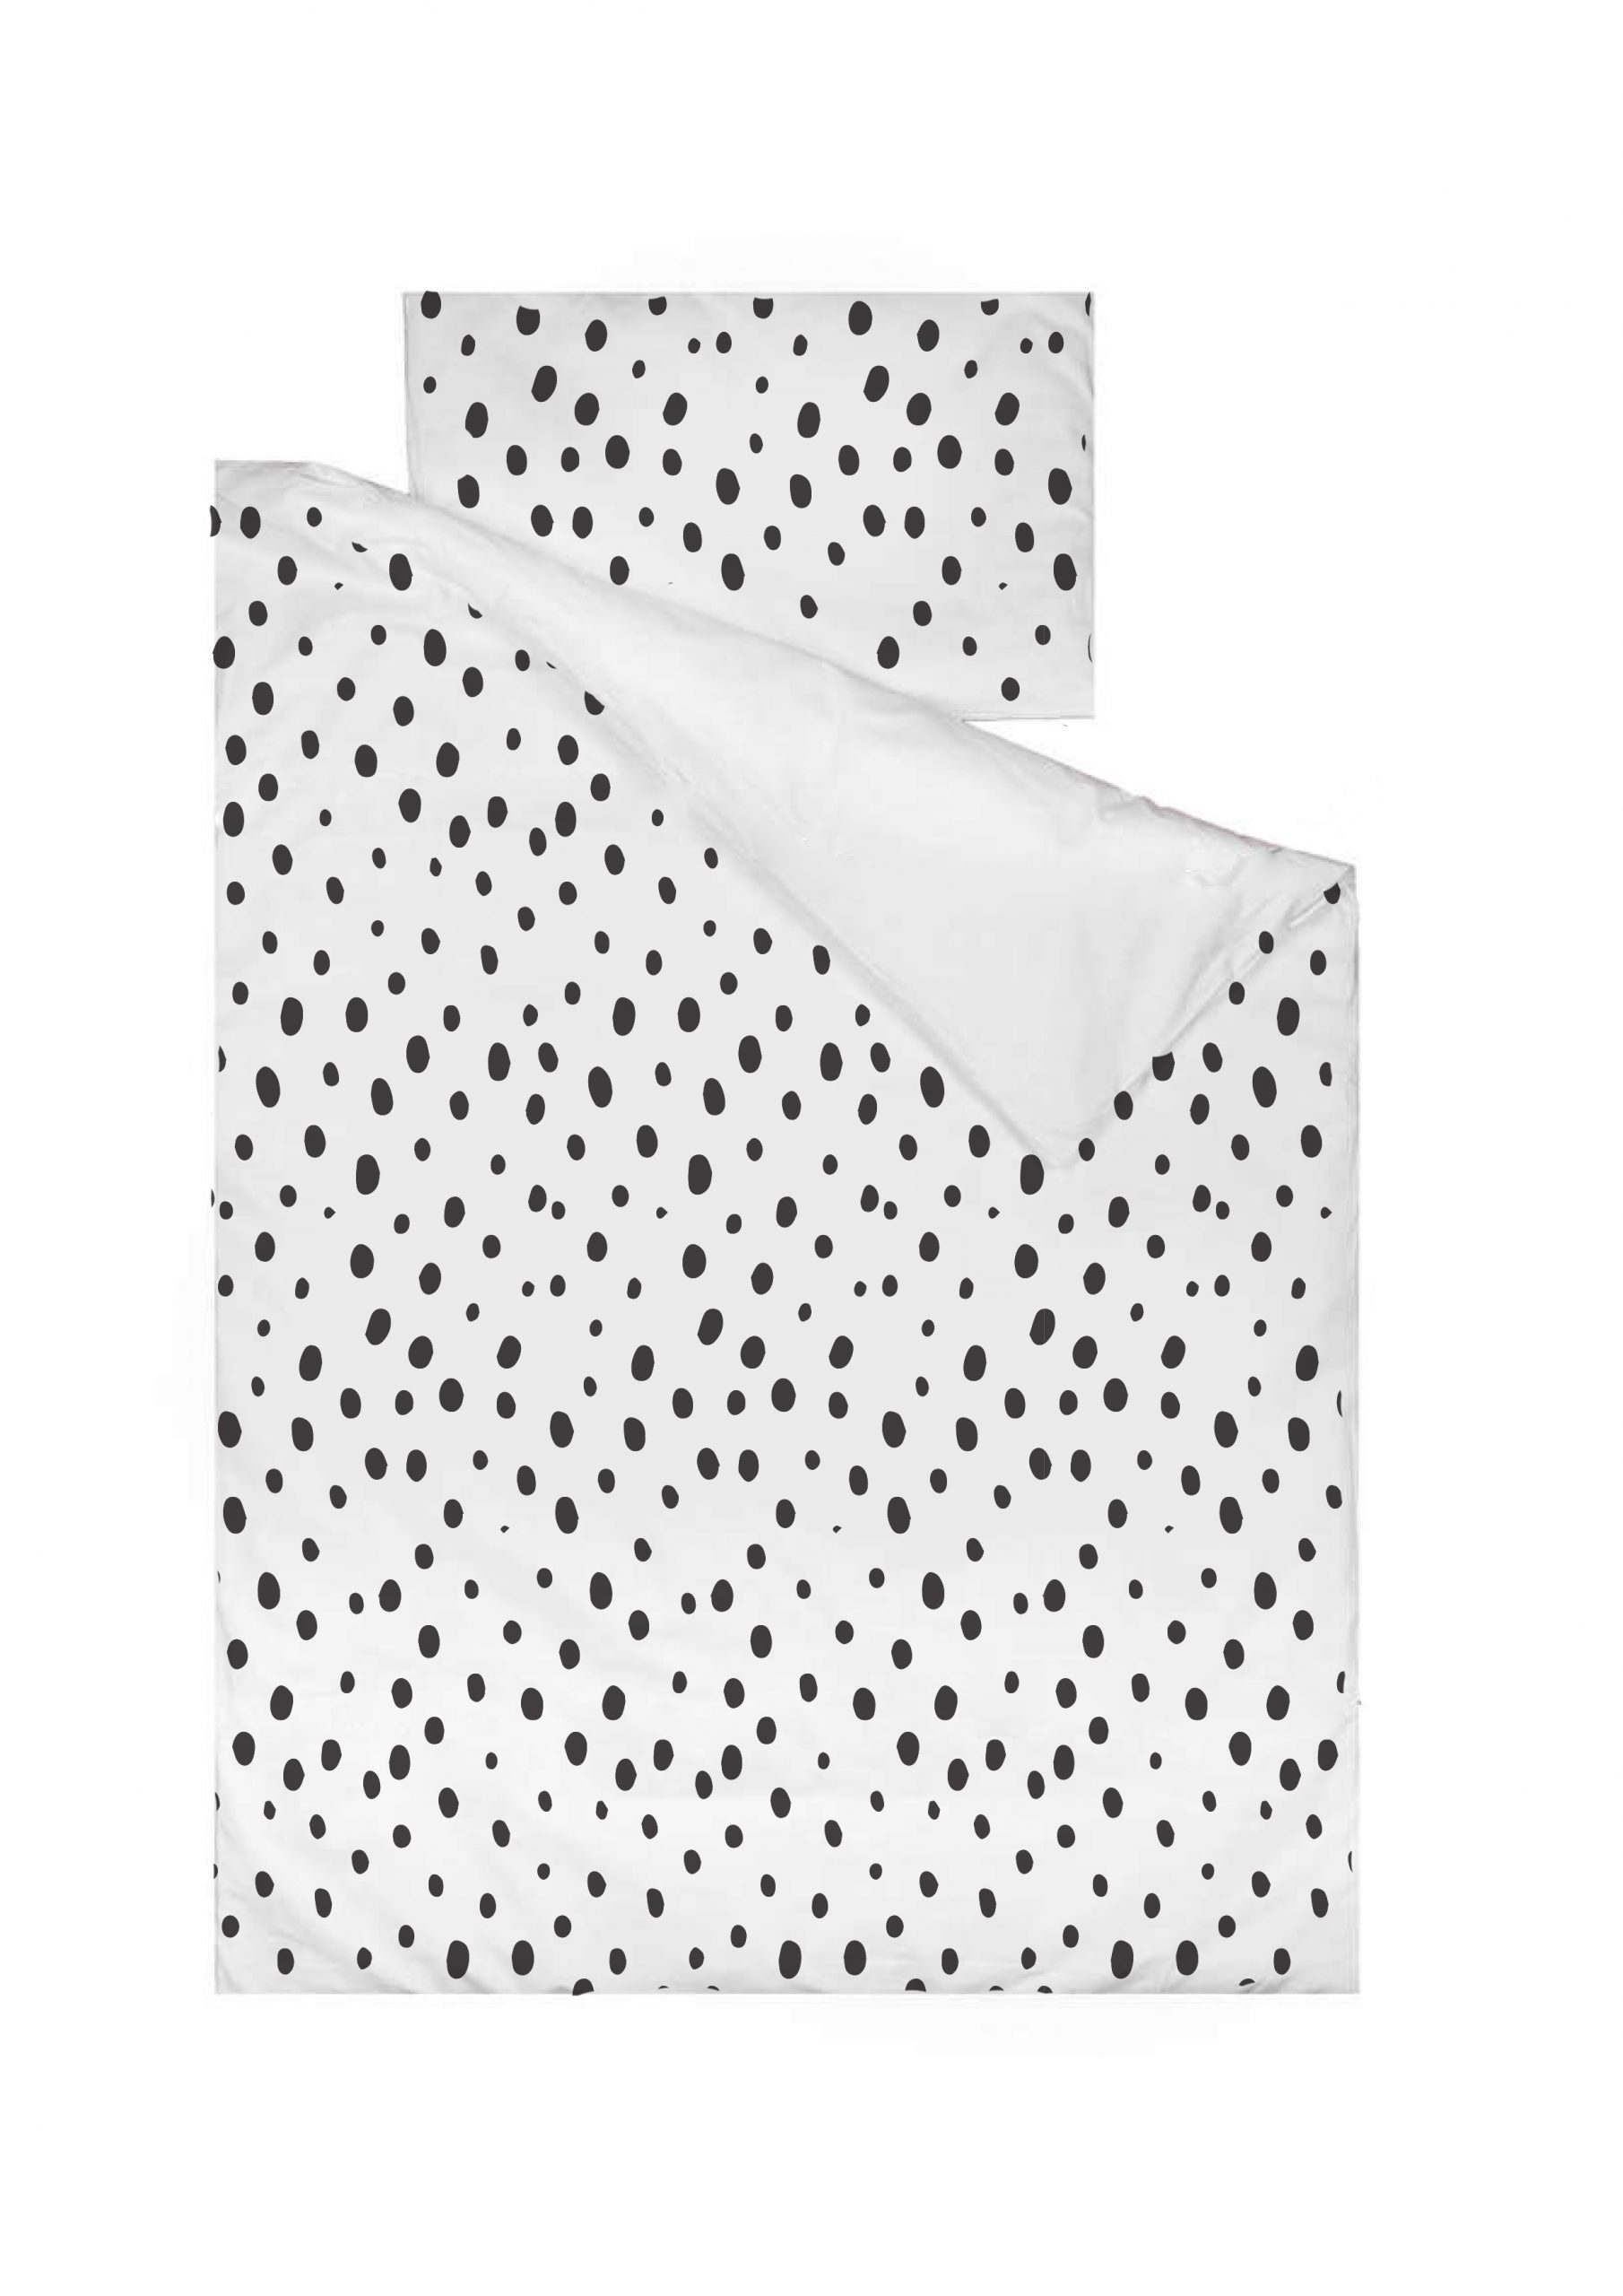 Spotty Cot Duvet Cover and Cot Pillow Case